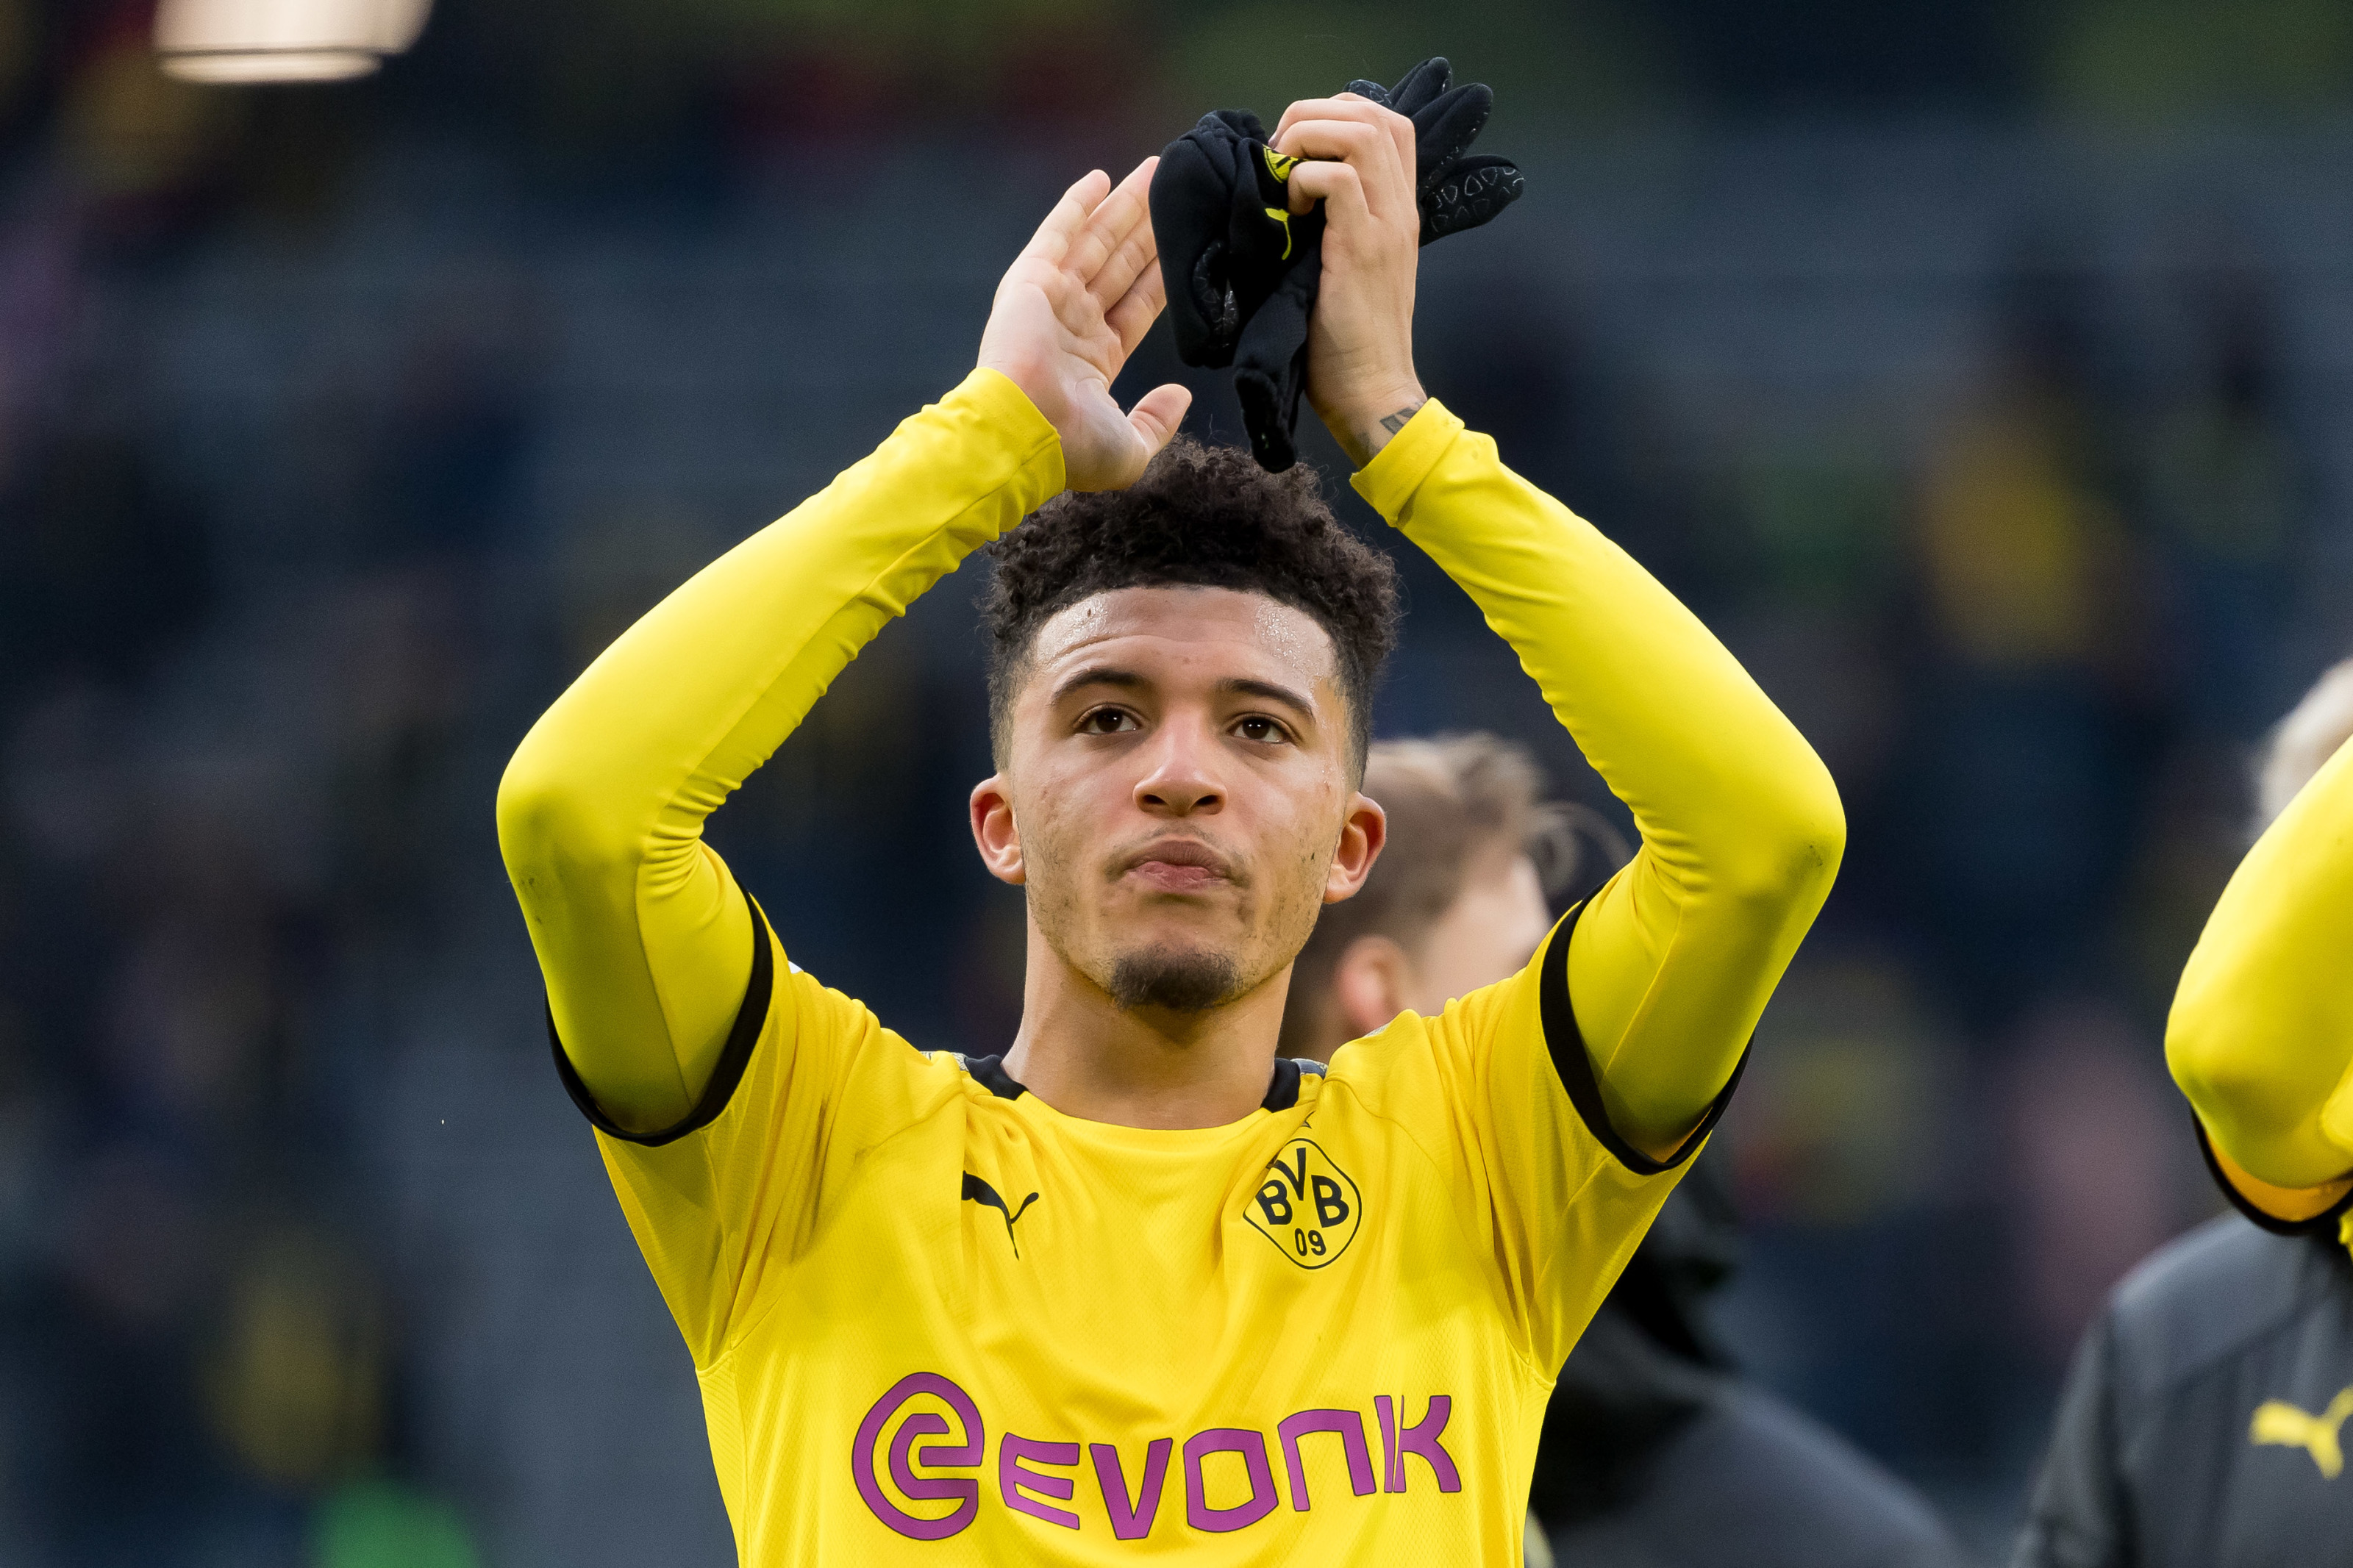 Manchester United: Jadon Sancho will only sign on one condition